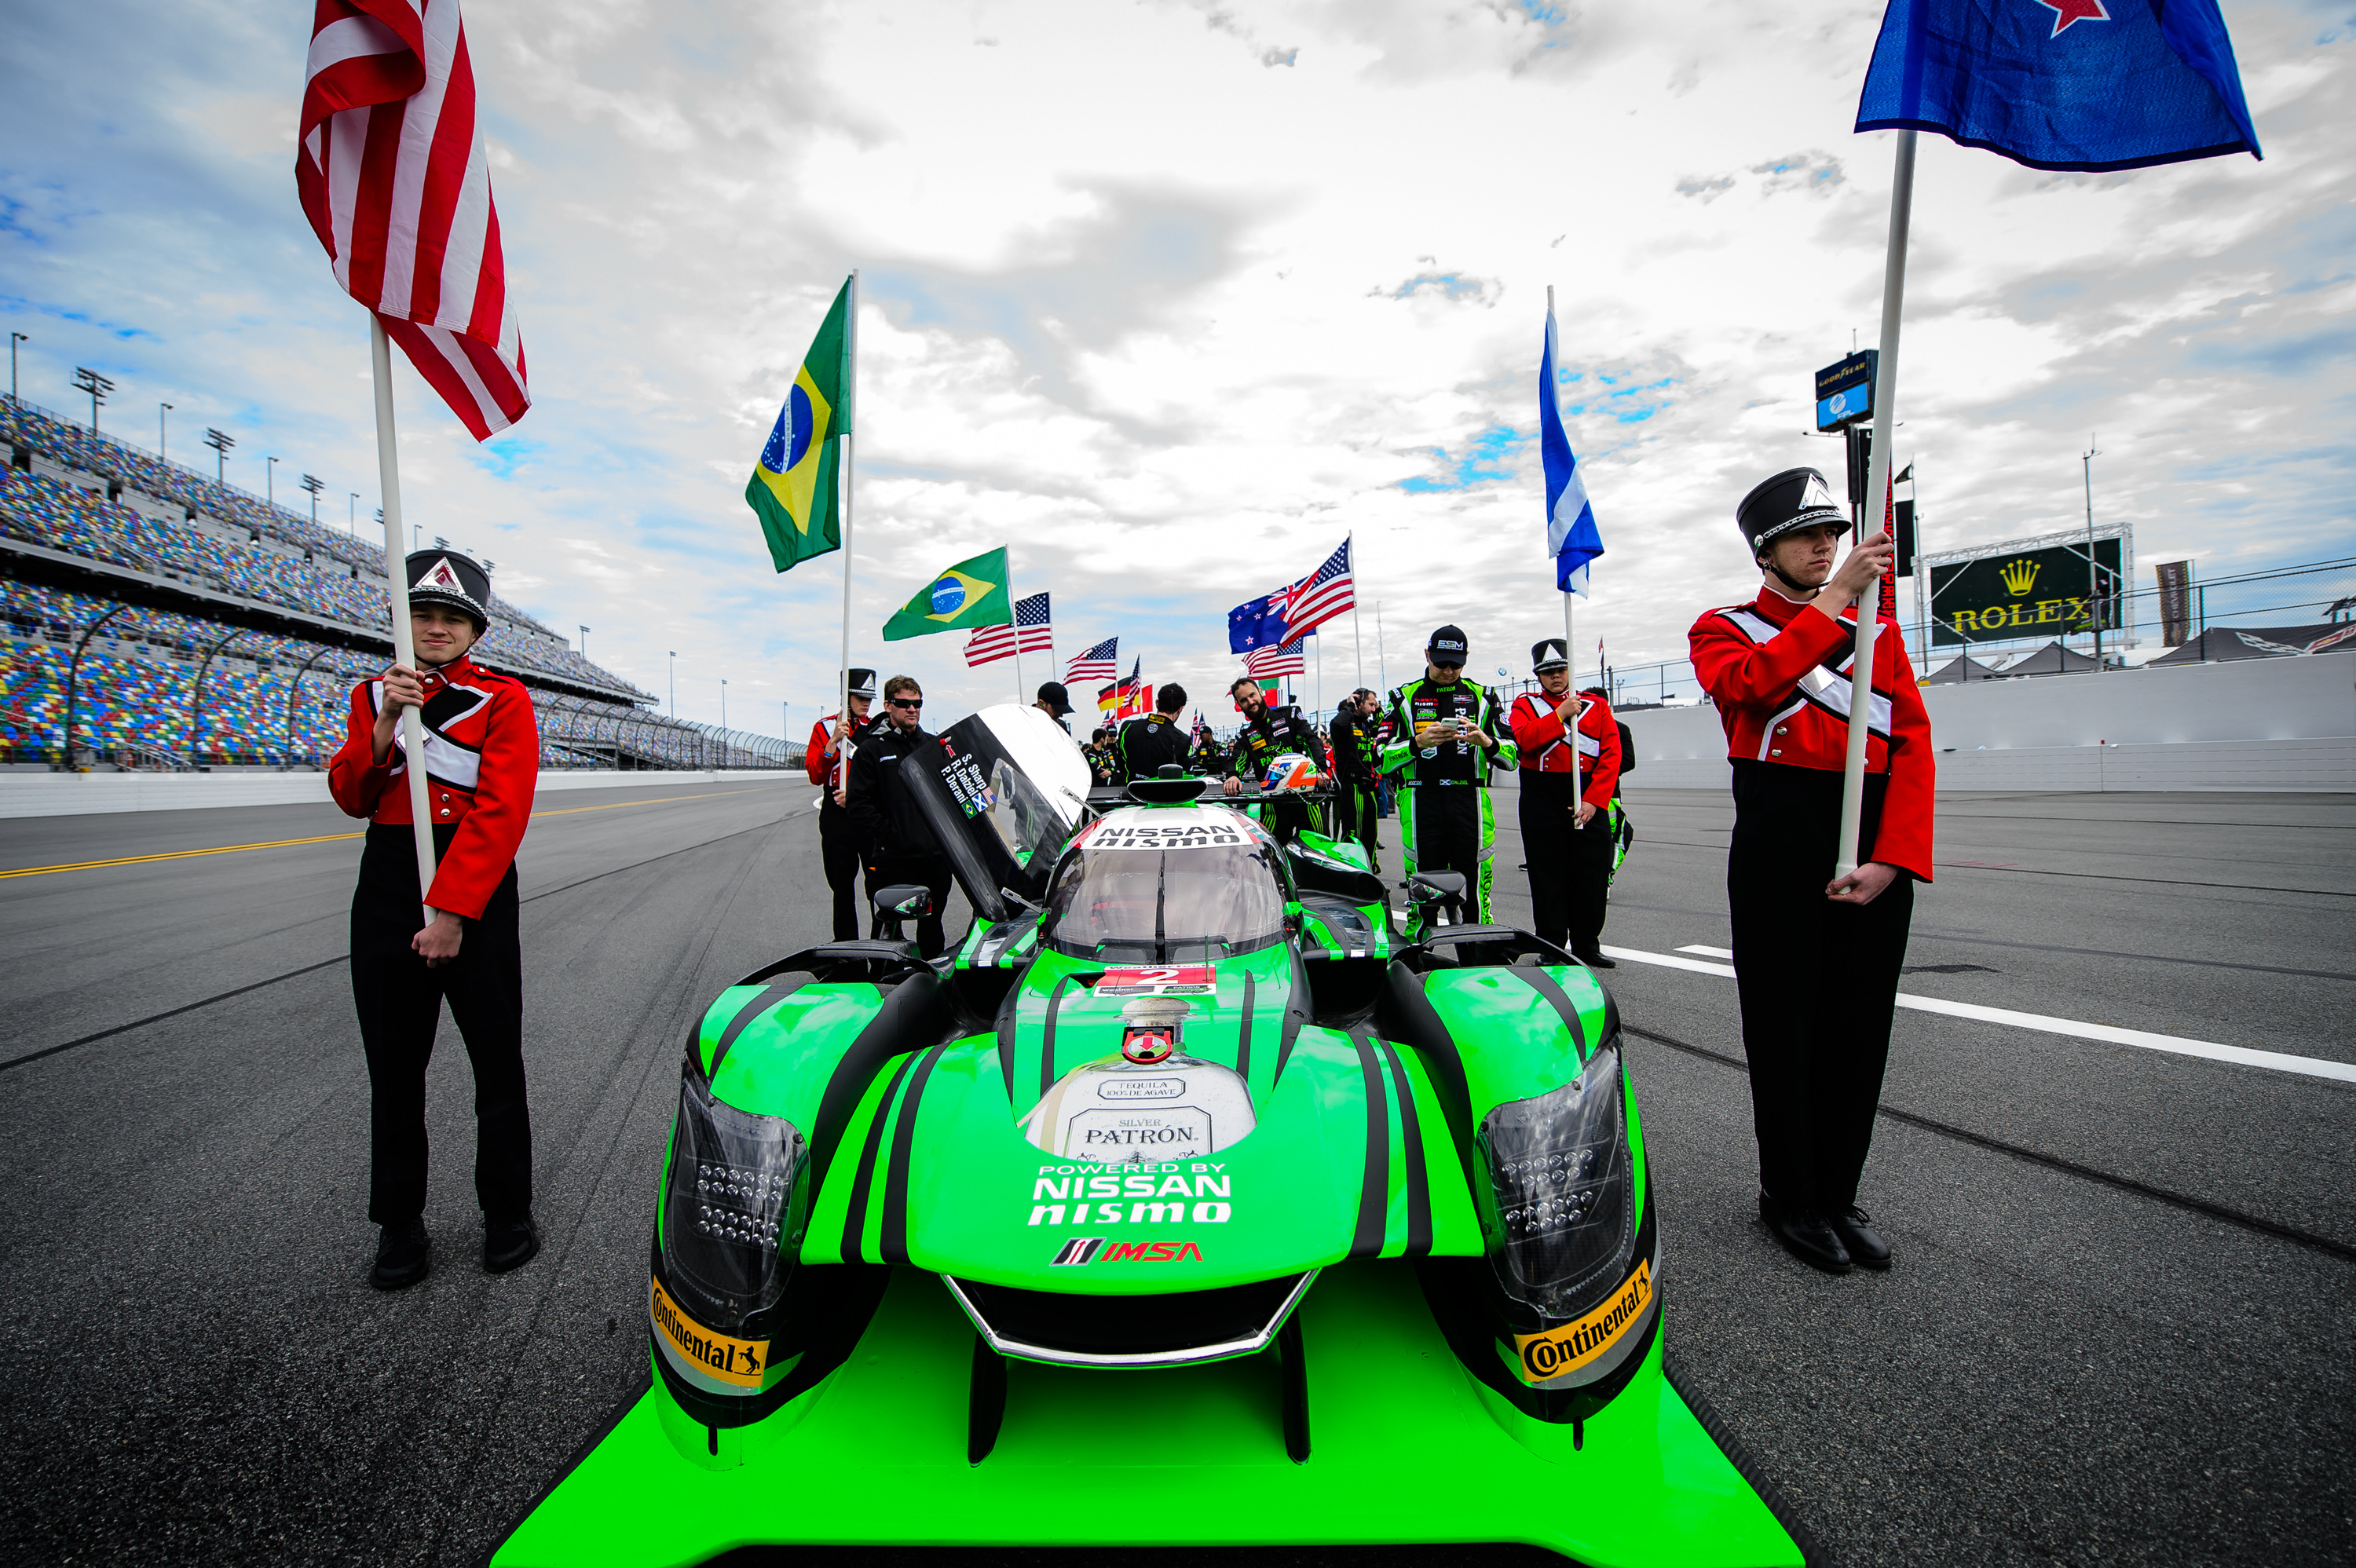 Tequila Patrón Debuts DPi Program with Top Five Finish at Rolex 24